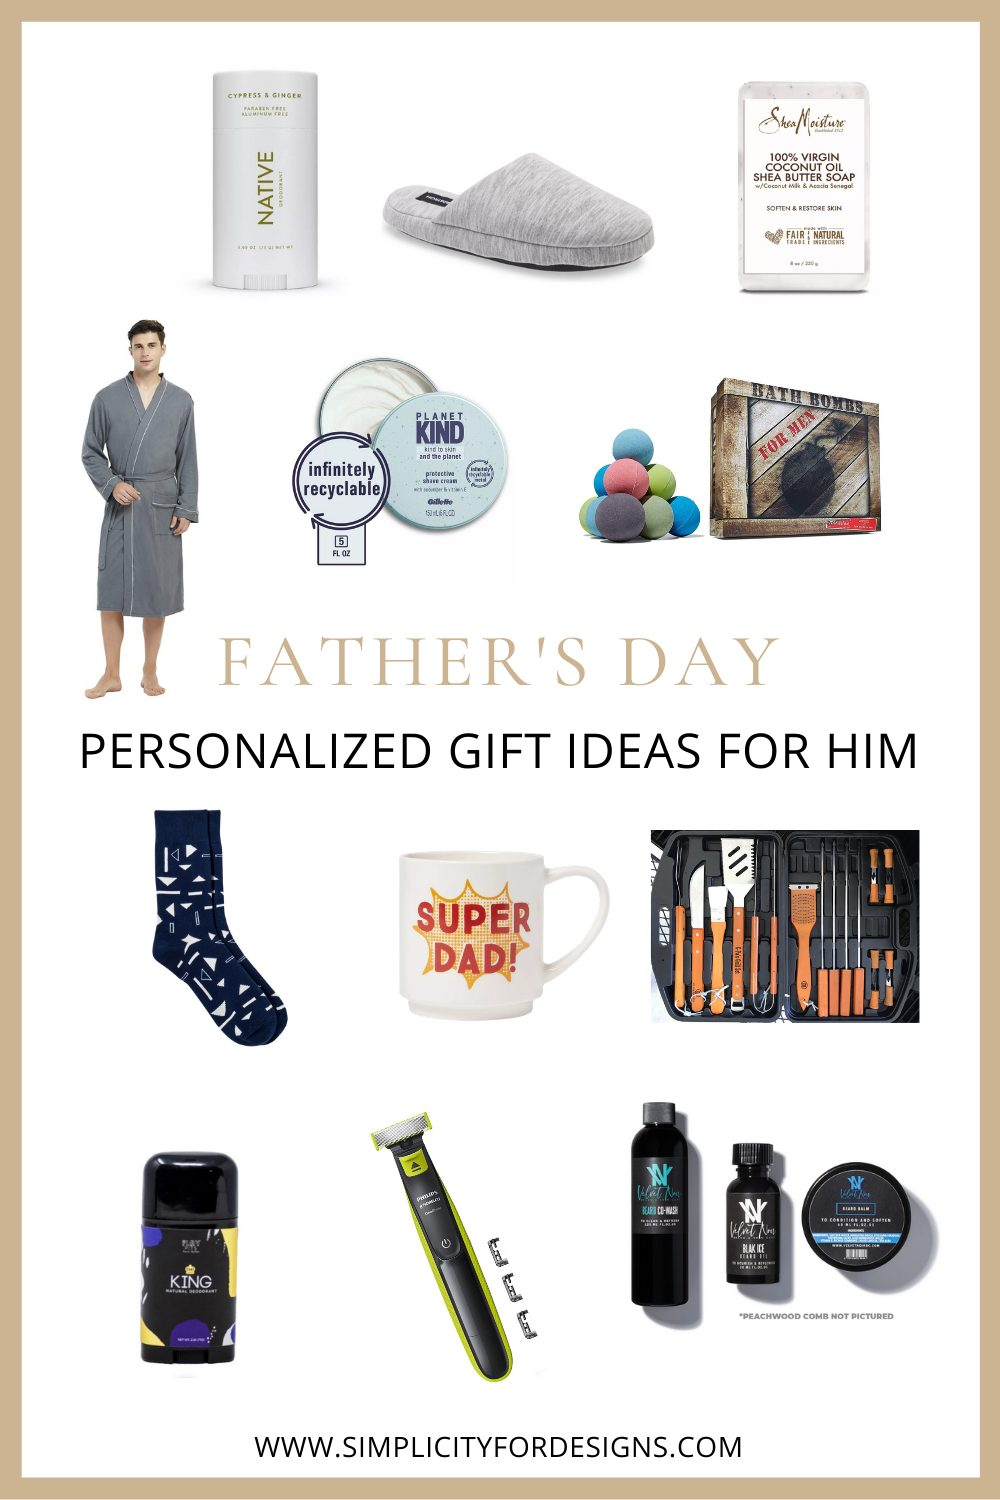 father's day gifts ideas for him